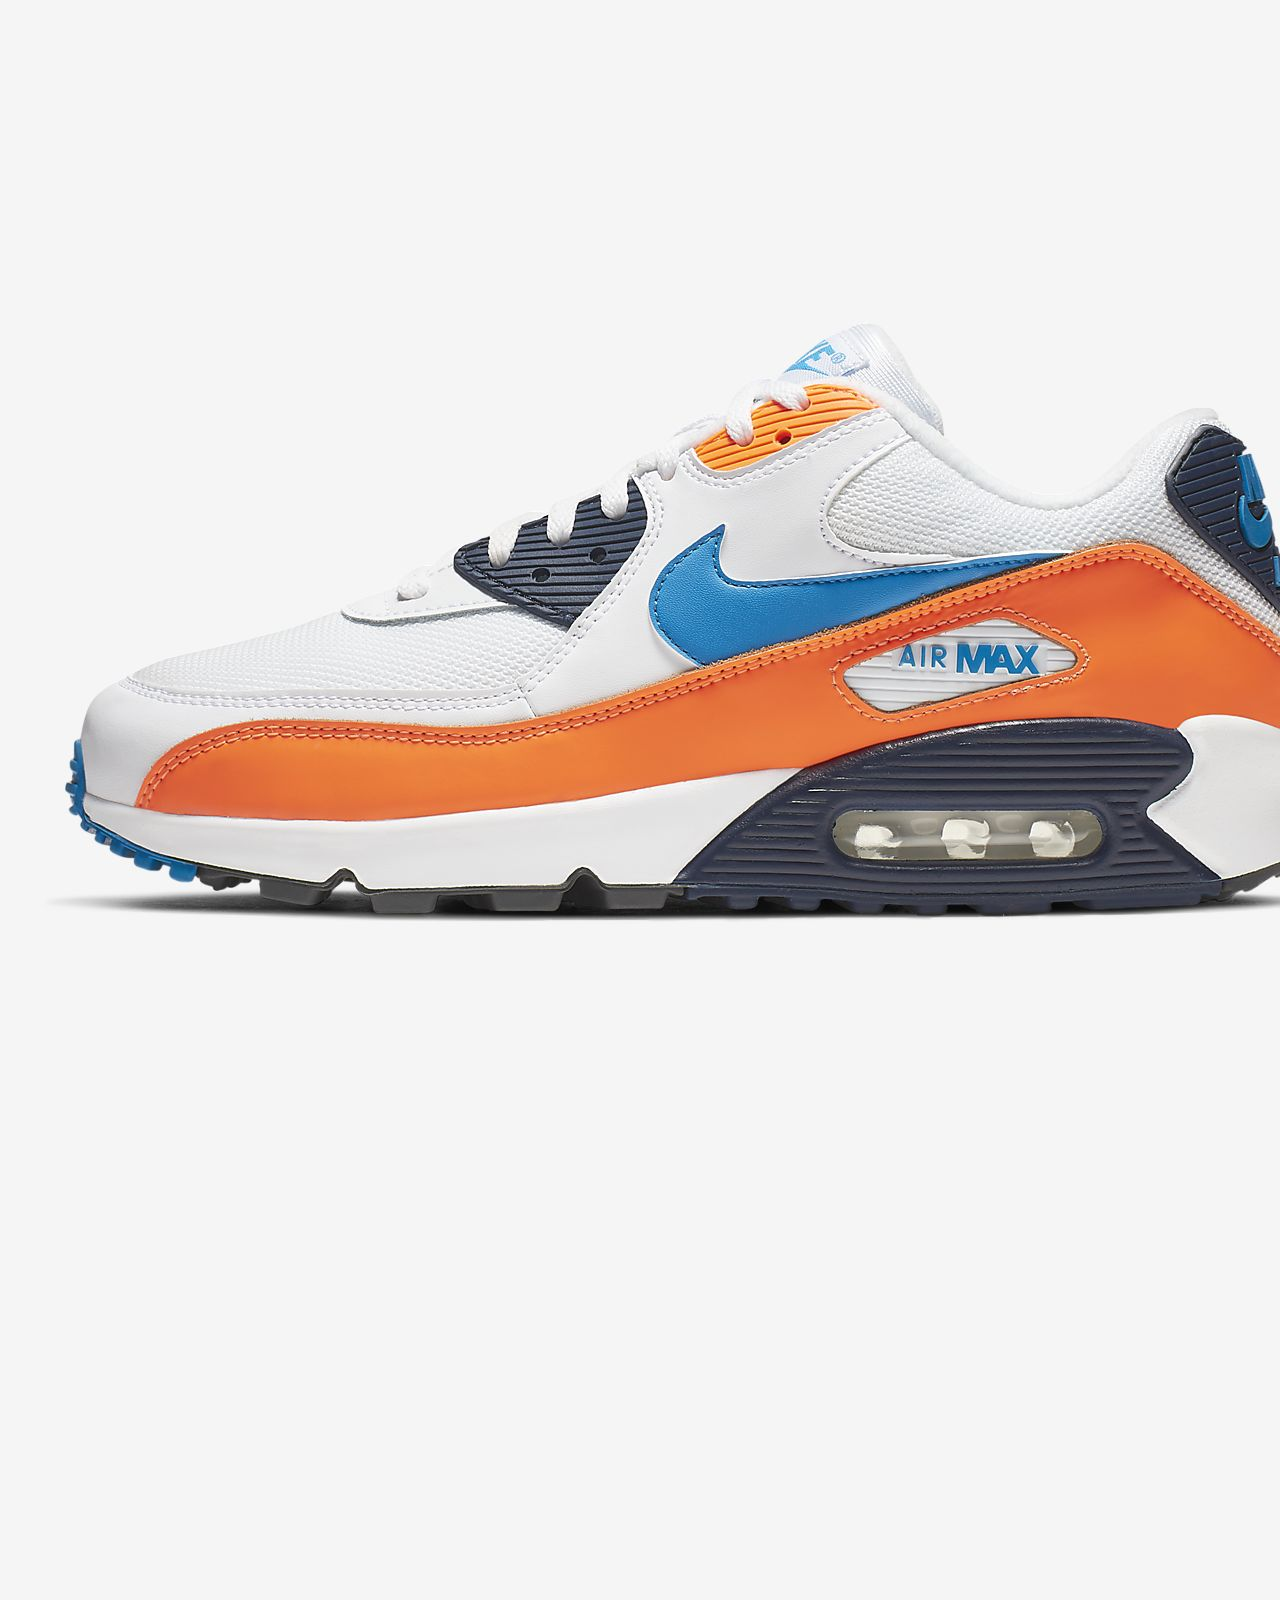 separation shoes 7a662 33547 ... Nike Air Max 90 Essential Men s Shoe